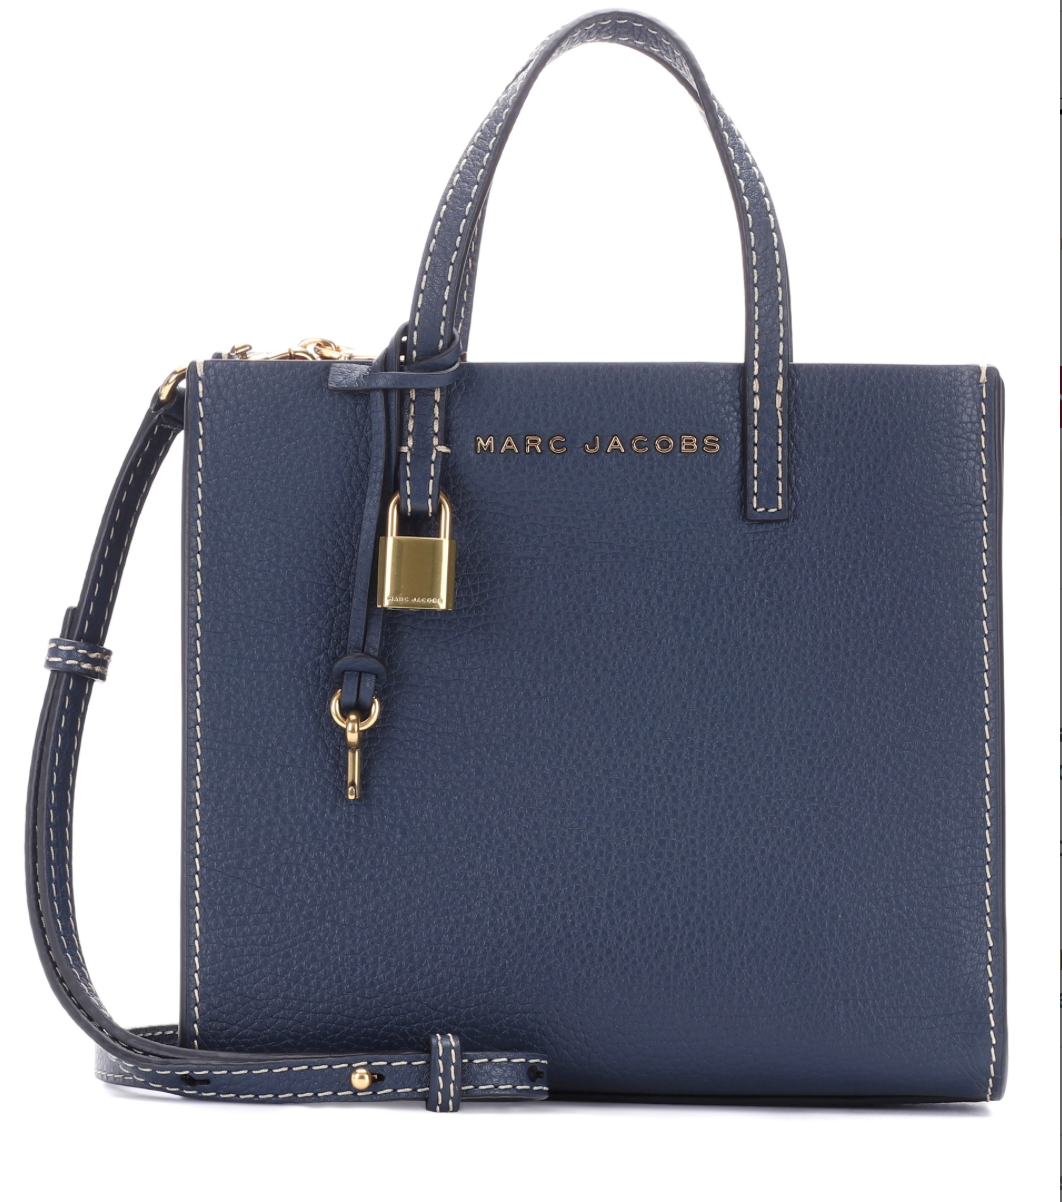 Marc Jacobs leather tote, $480